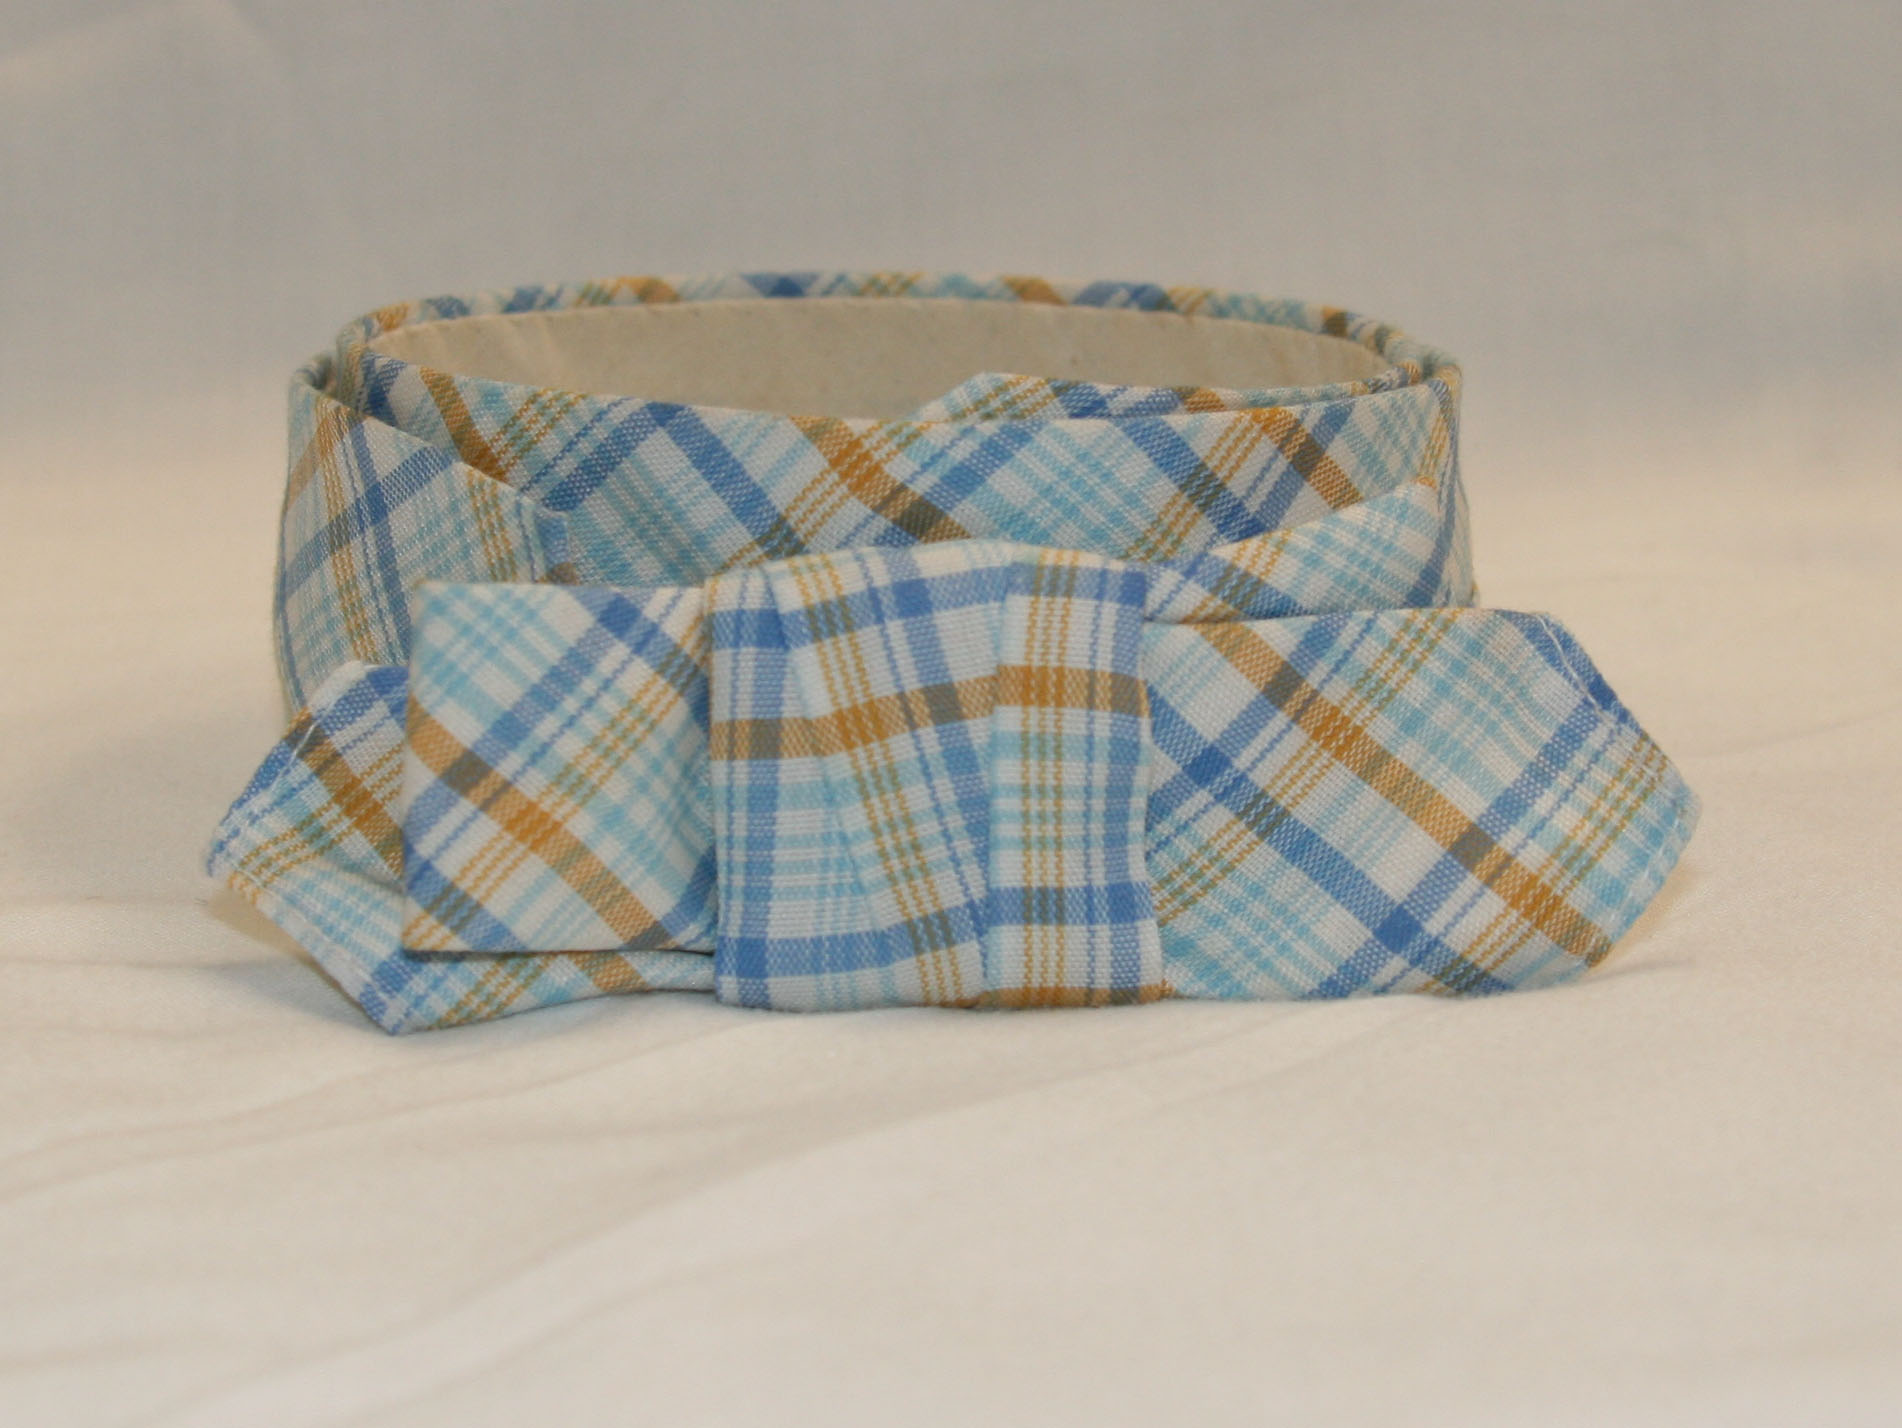 Spring Cravat Blue and yellow plaid